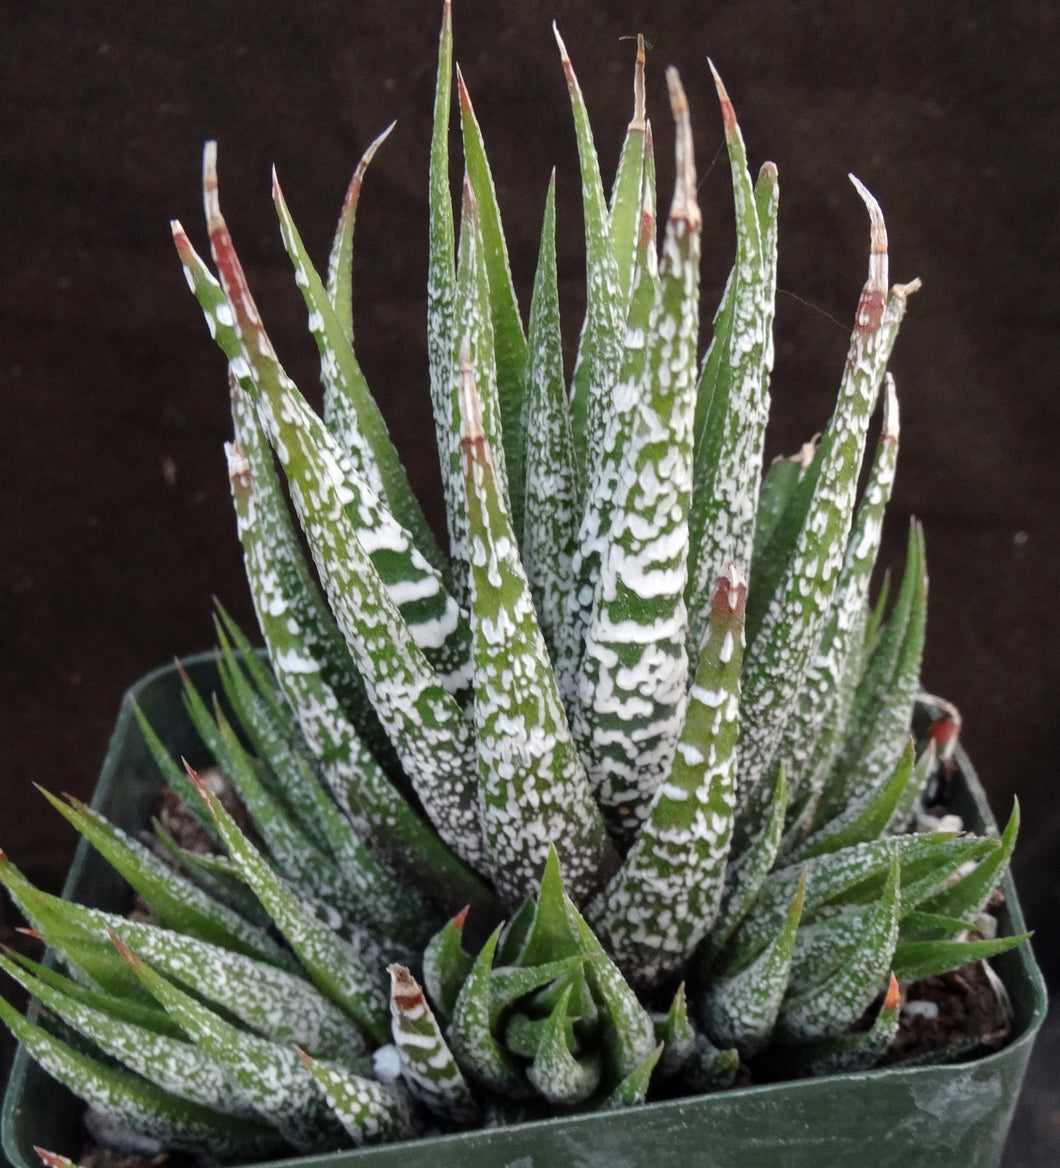 Haworthia fasciata 'Wet Paint' Clumping plants!